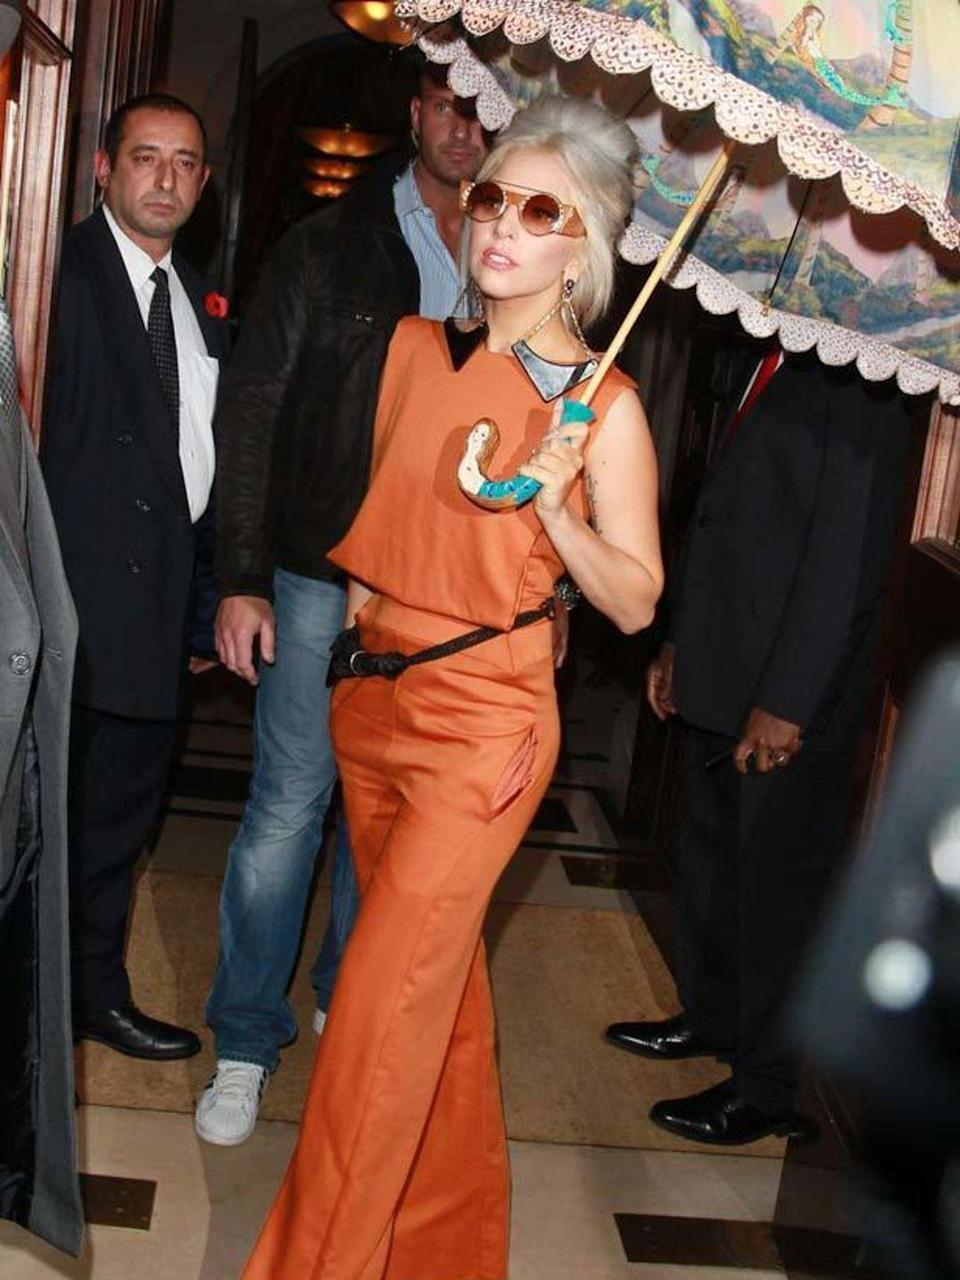 <p>Lady Gaga goes for bold in this tangerine top with wide leg trousers complete with round sunglasses and printed umbrella in London, November 2012.</p>